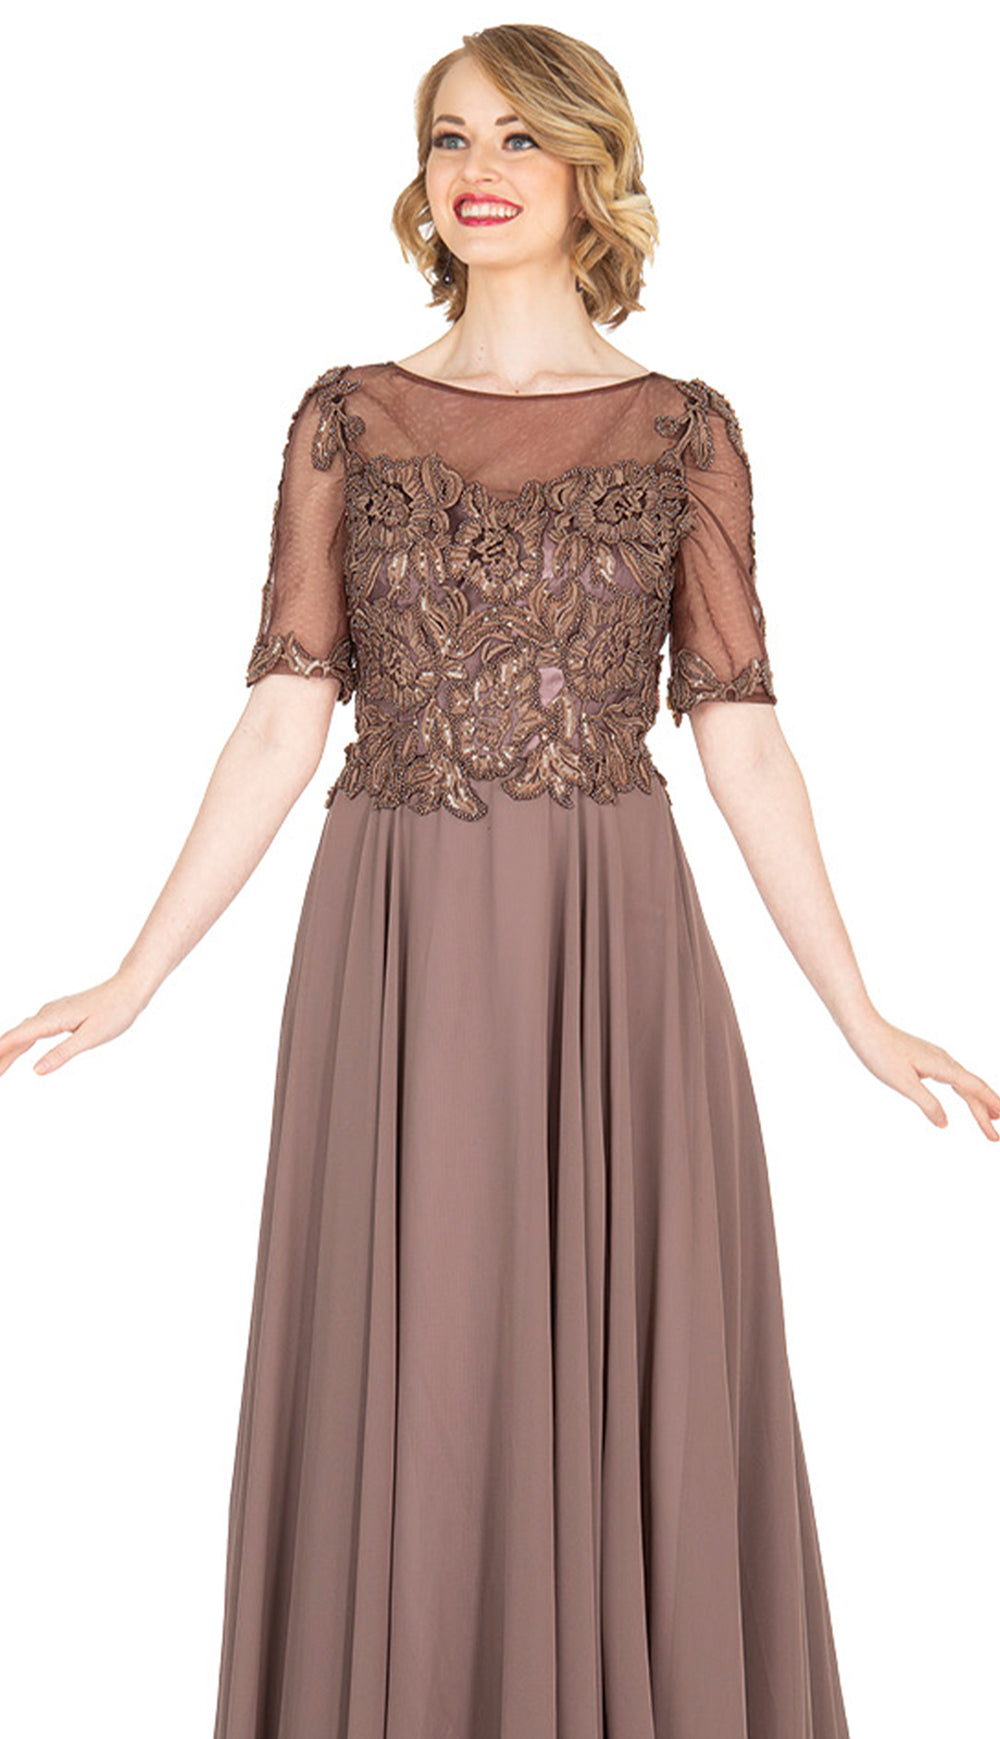 Champagne Italy Dress 5413-Light Brown - Church Suits For Less